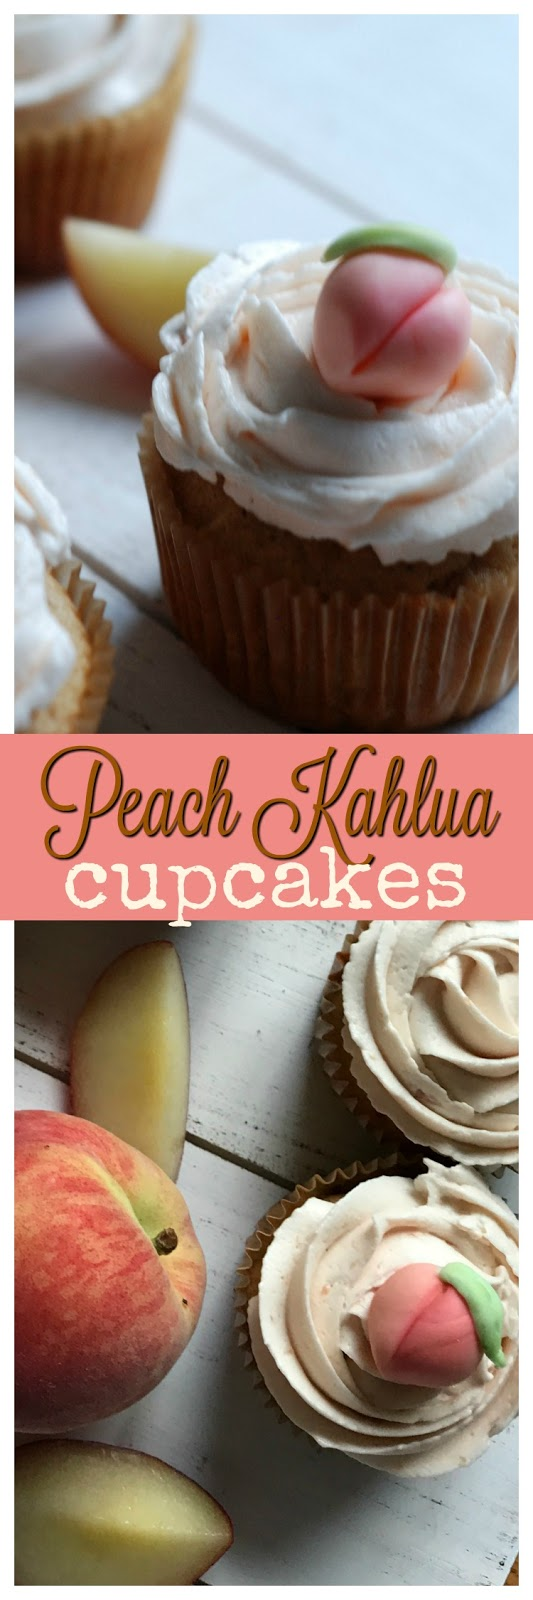 easy peach kahula cupcakes and buttercream recipe